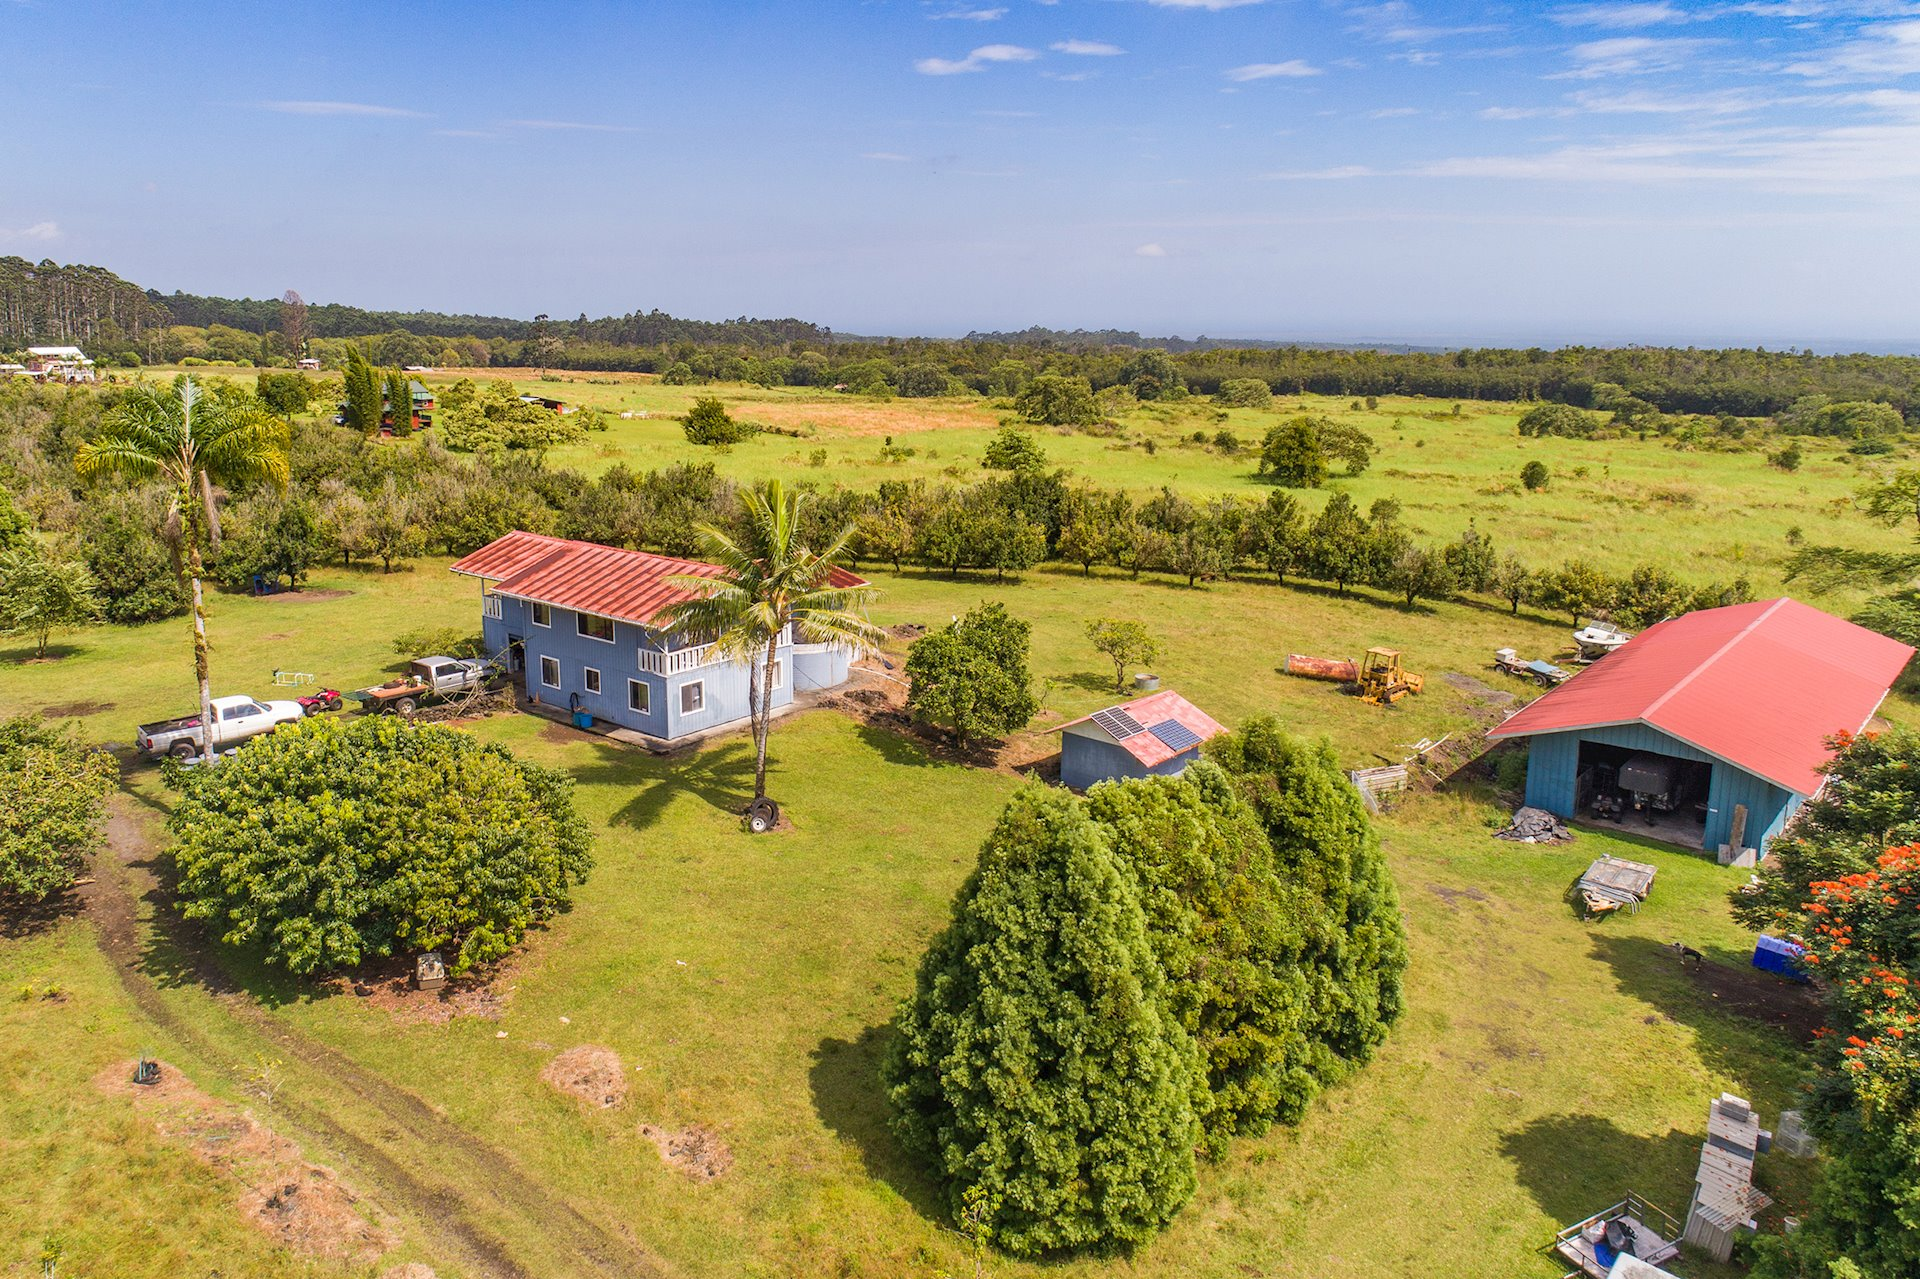 Incredible opportunity to own a huge piece of paradise in a private, quiet location. This property includes over 64 acres of macadamia nut trees, completely fenced, plus a barn.<br><br>A quiet country lifestyle awaits in the two-bedroom, two-bath home with ocean views and vaulted tongue-and-groove ceilings. Sit on your covered lanai and enjoy the peace of your lush surroundings, which also include ohia, palm, and Norfolk pine trees. Possible subdivision with A-20A zoning.